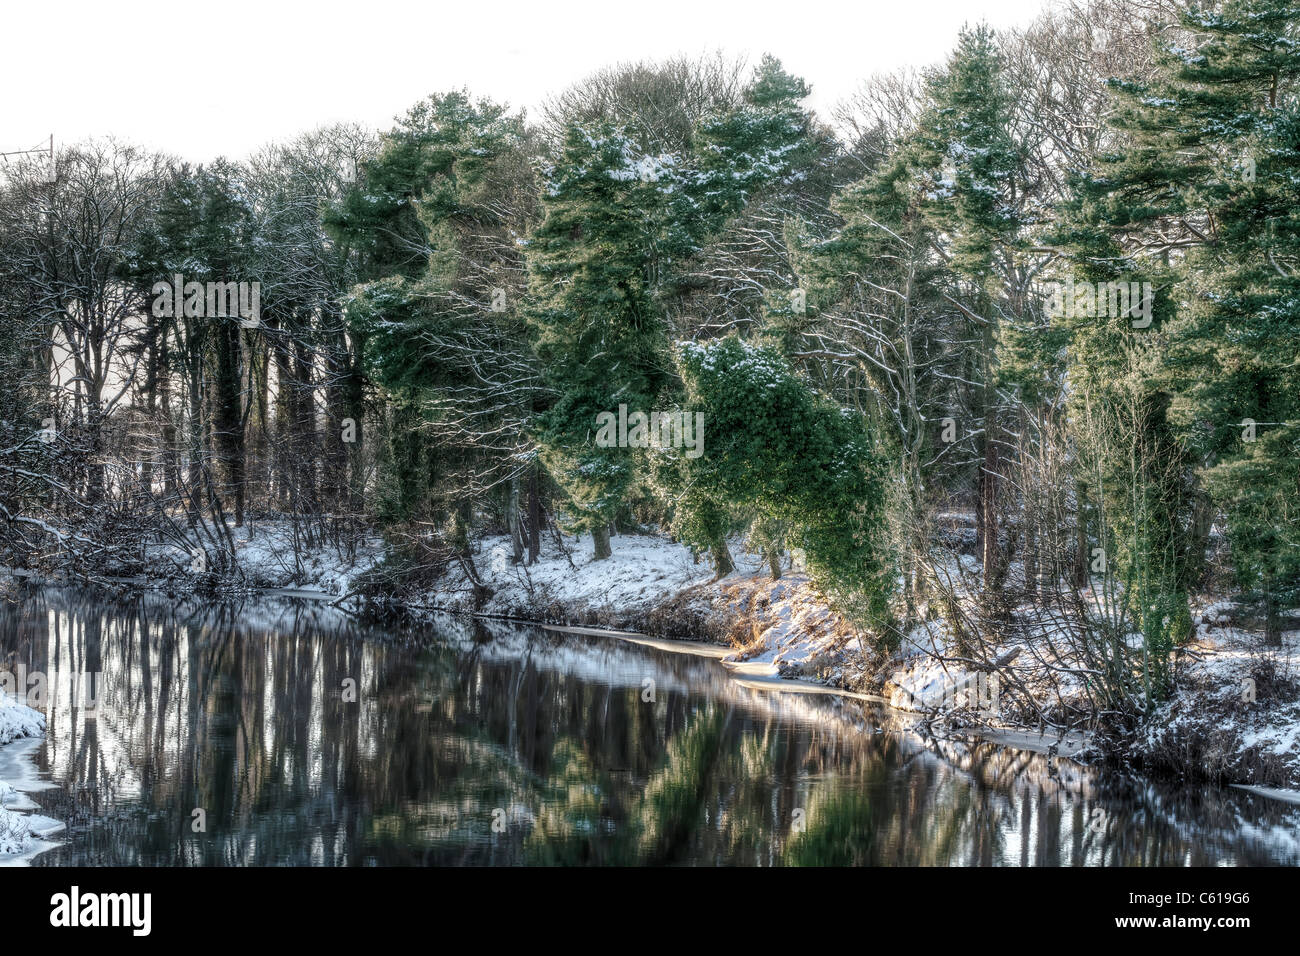 Snow covered evergreen trees along a riverbank. - Stock Image